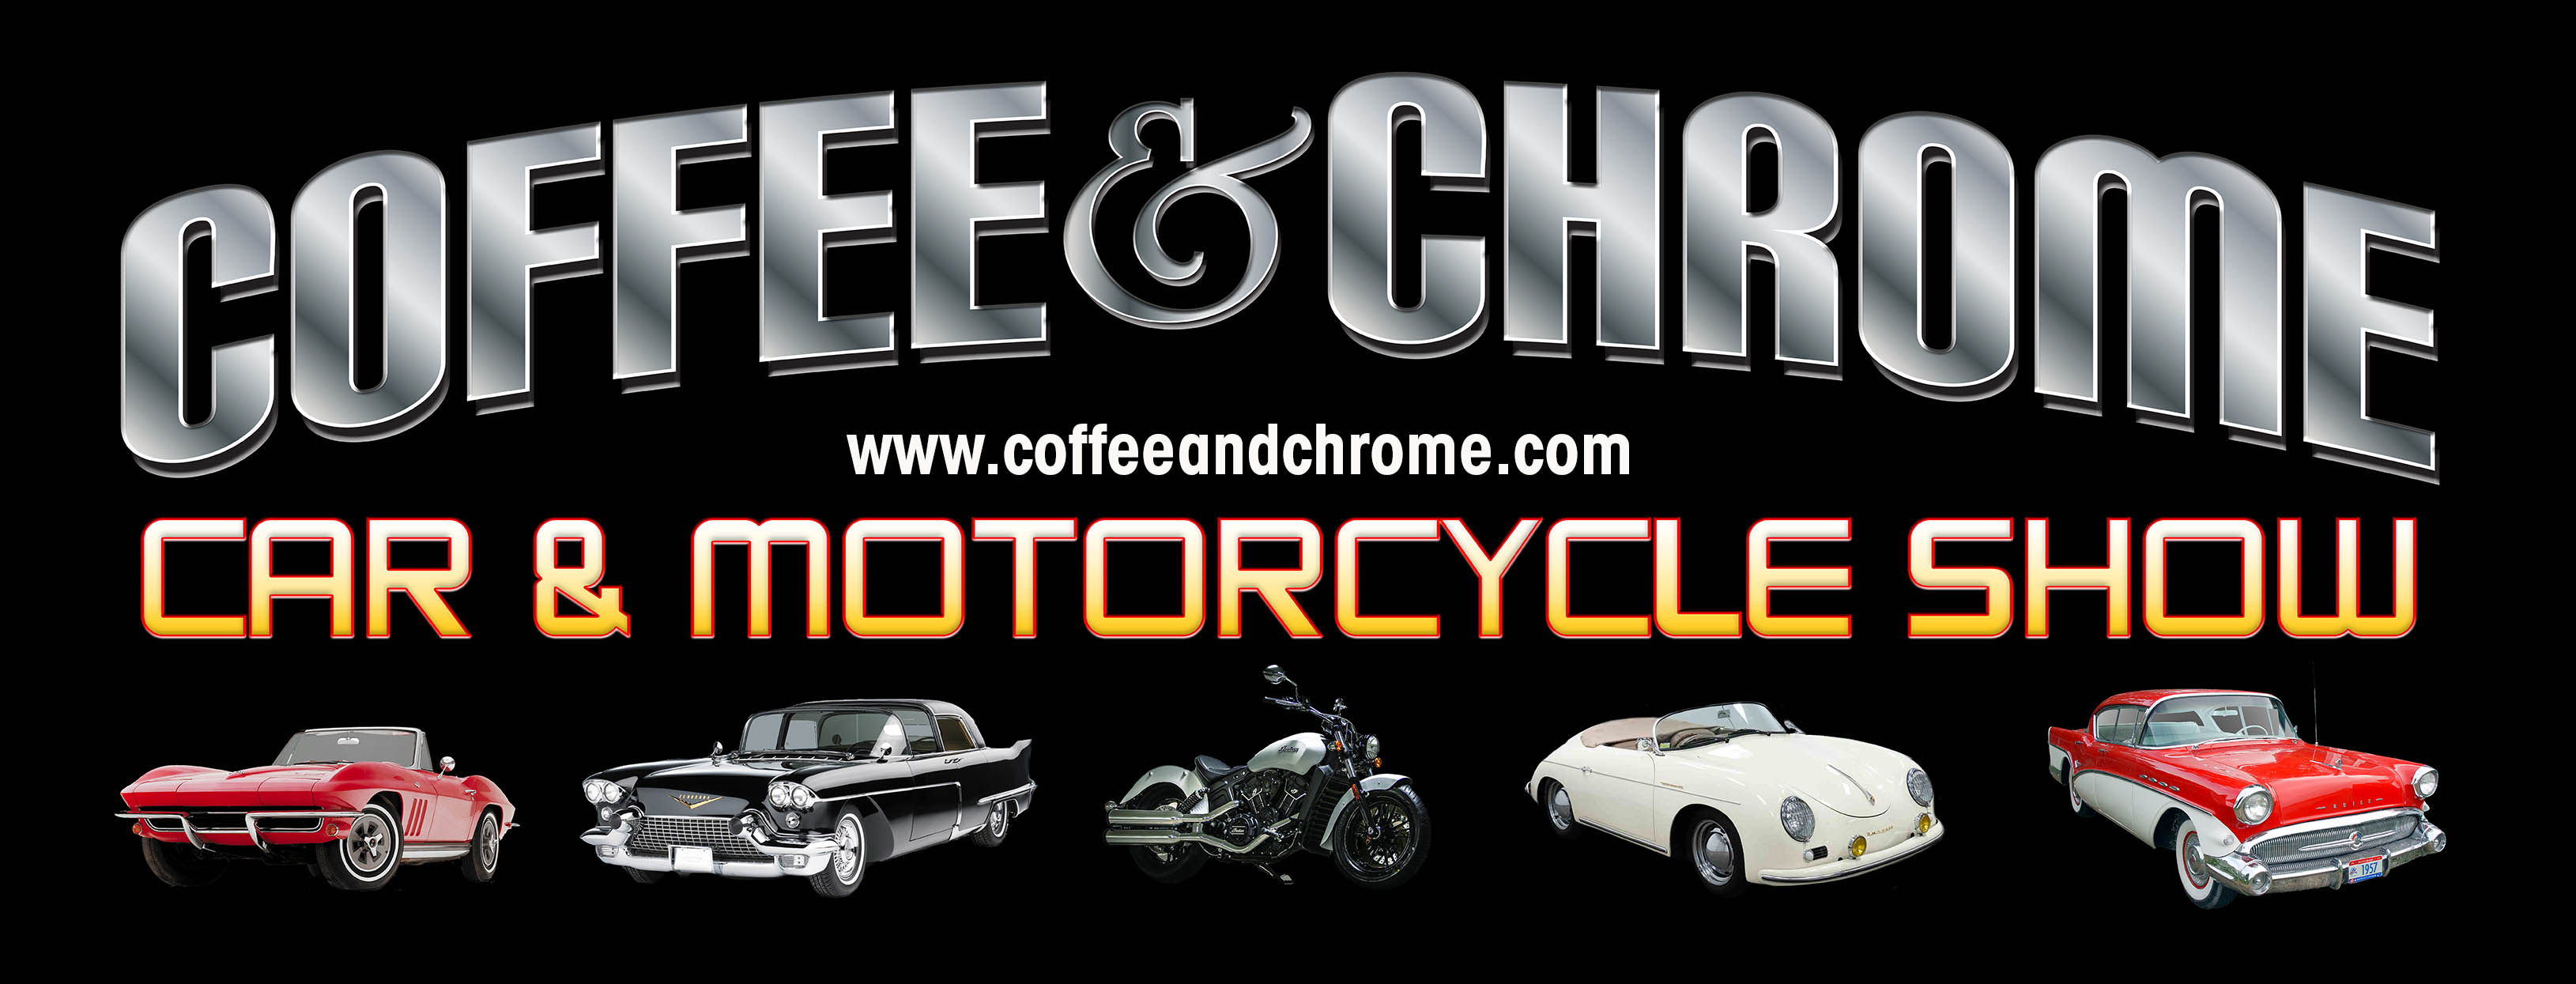 New Use Coffee and Chrome Logo